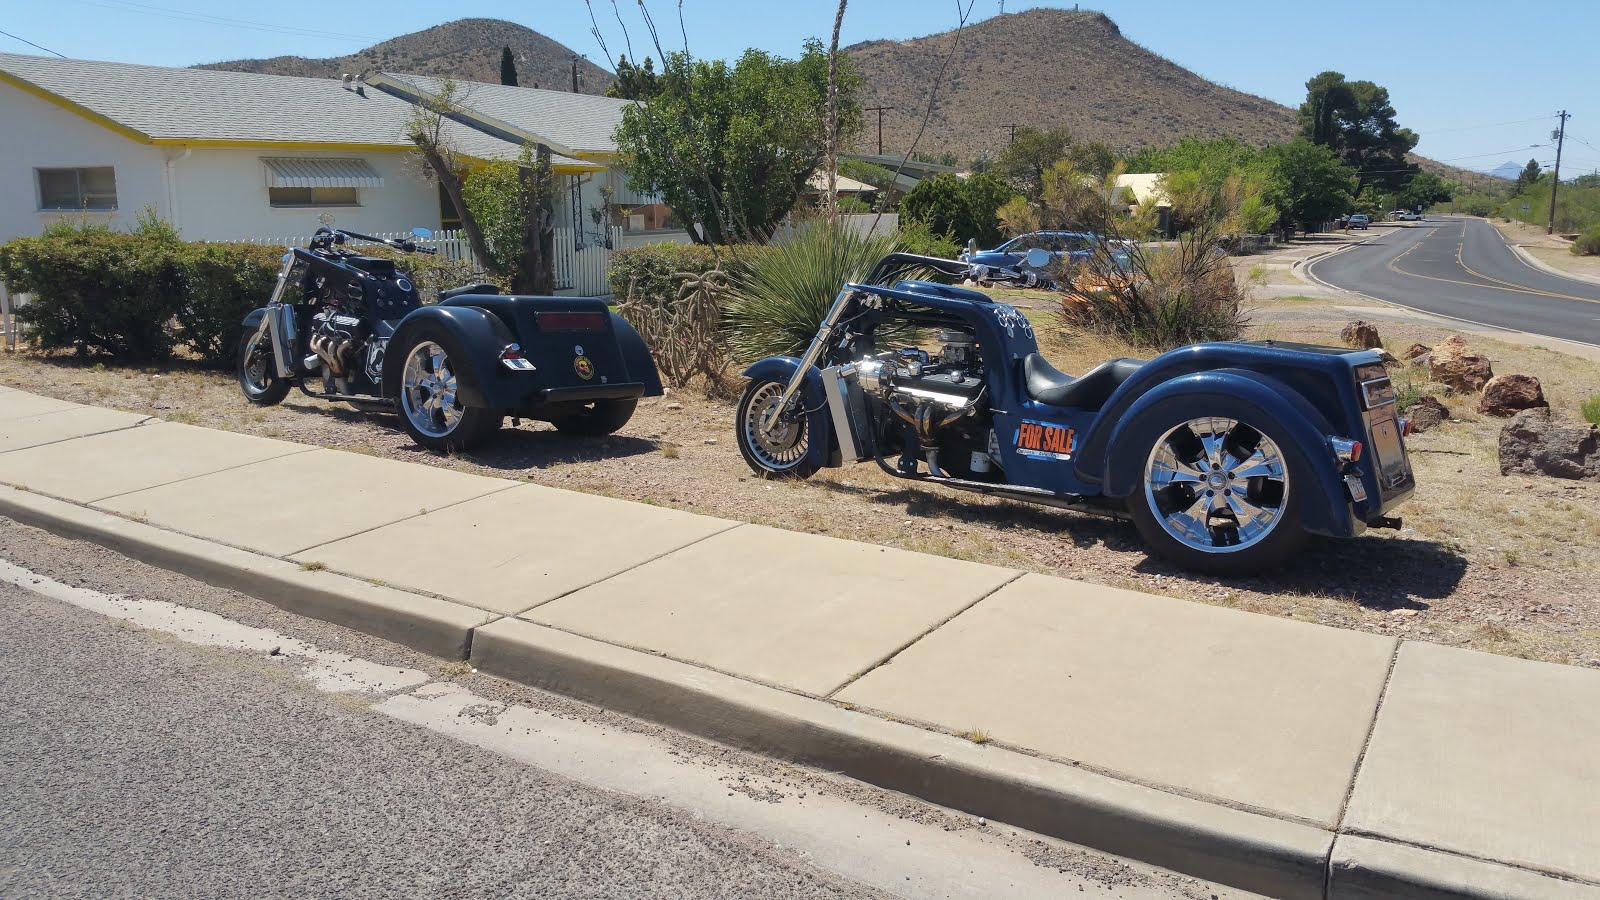 v8 trike black and blue